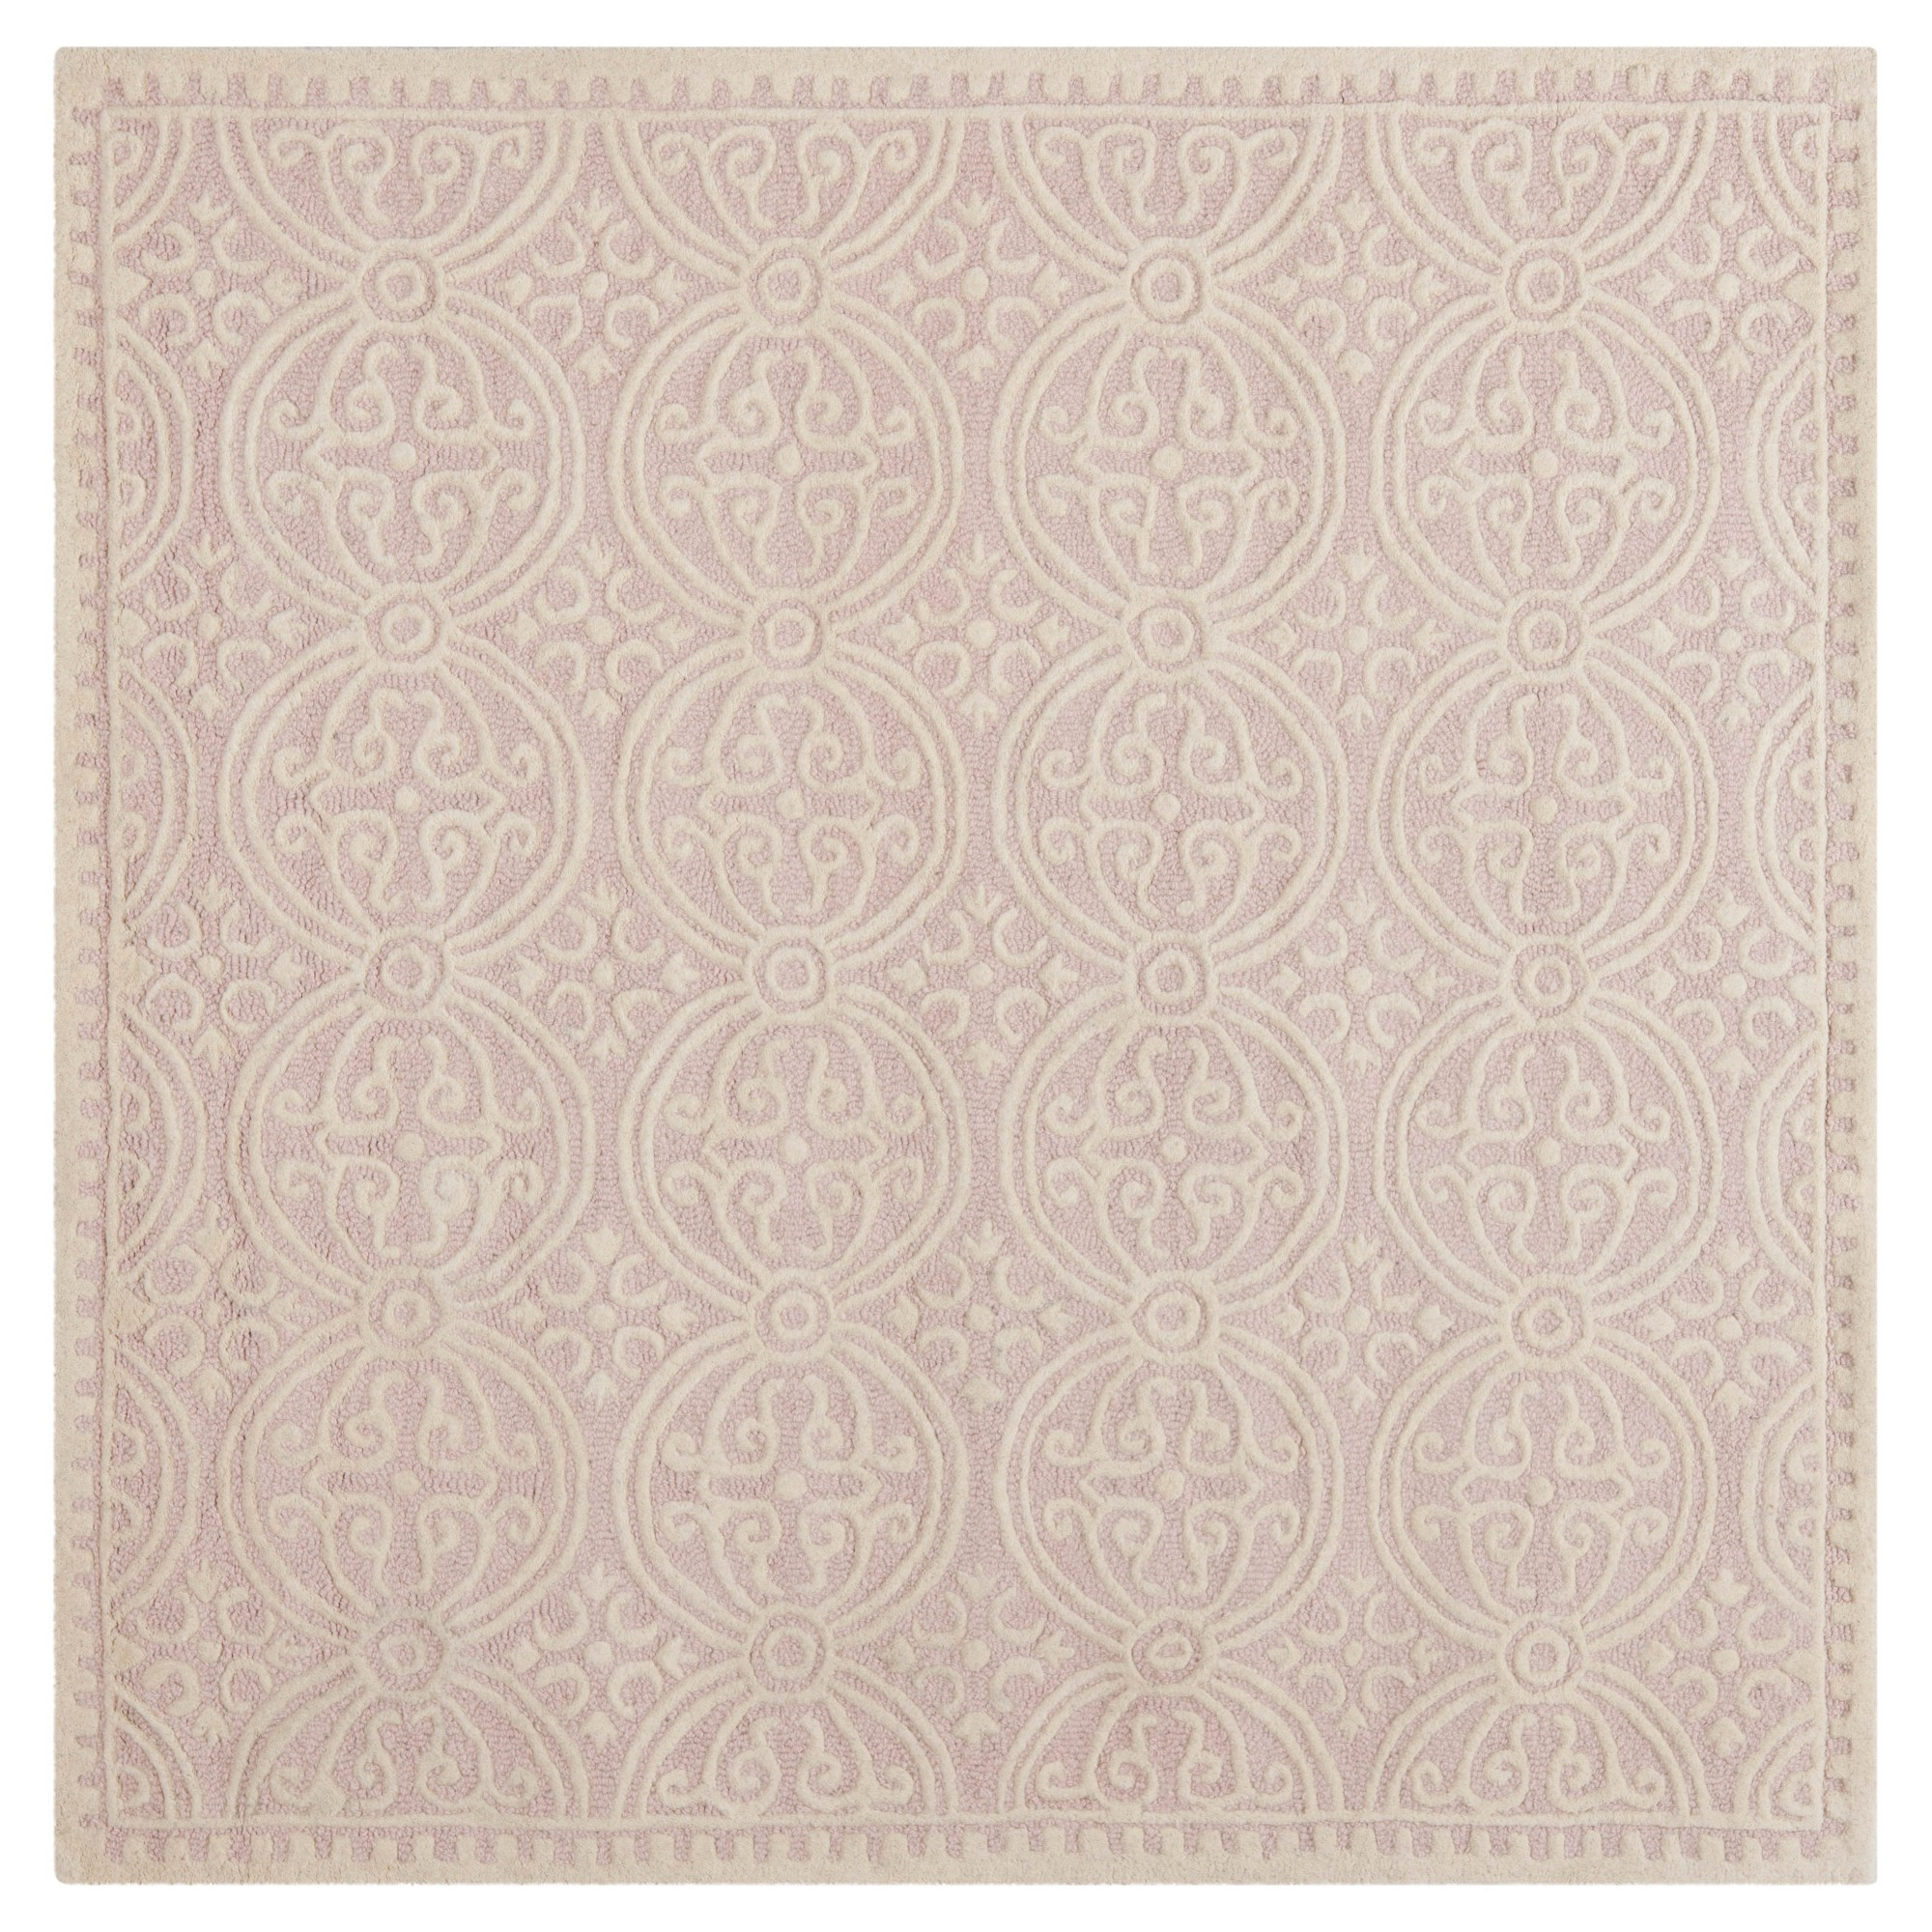 Pink/Ivory Geometric Tufted Square Accent Rug 4'X4' - Safavieh